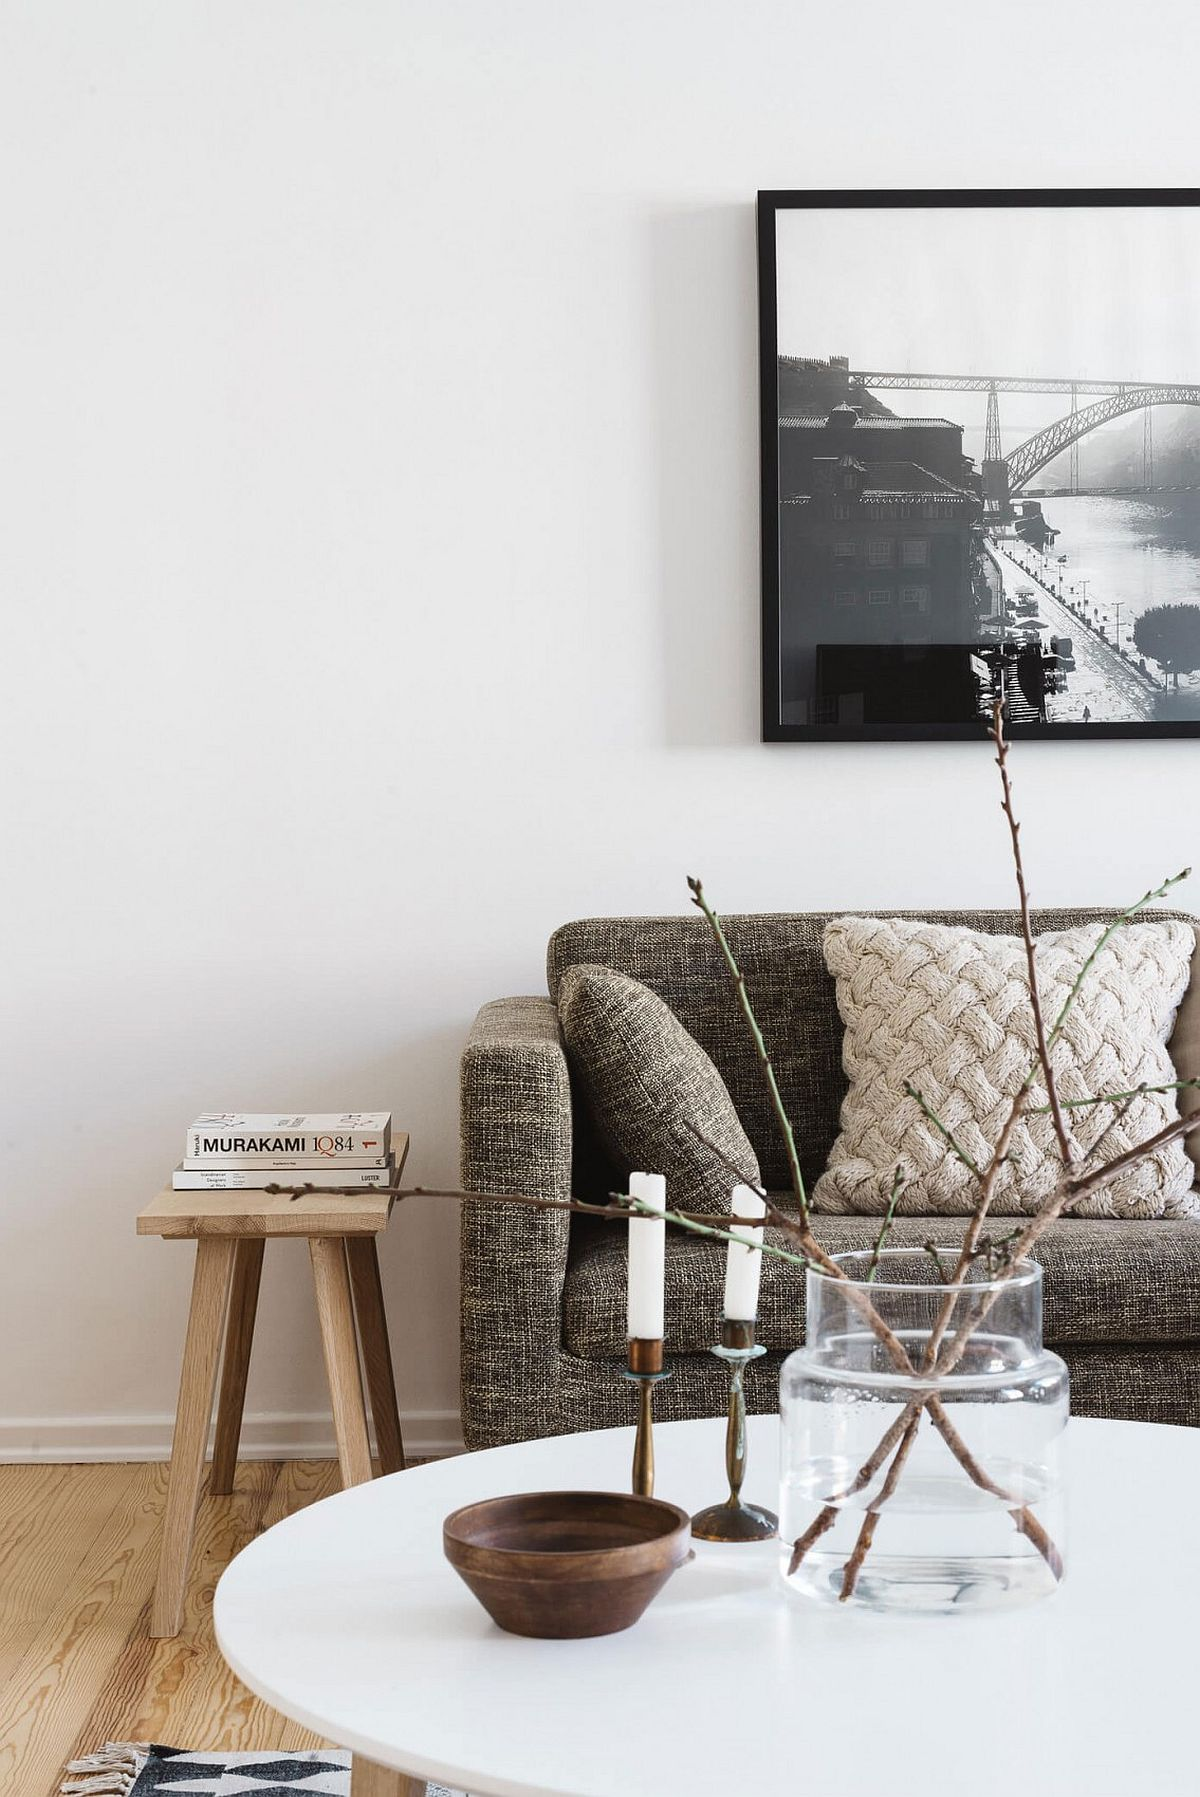 Black and white framed wall art plays into the neutral color scheme of the living room